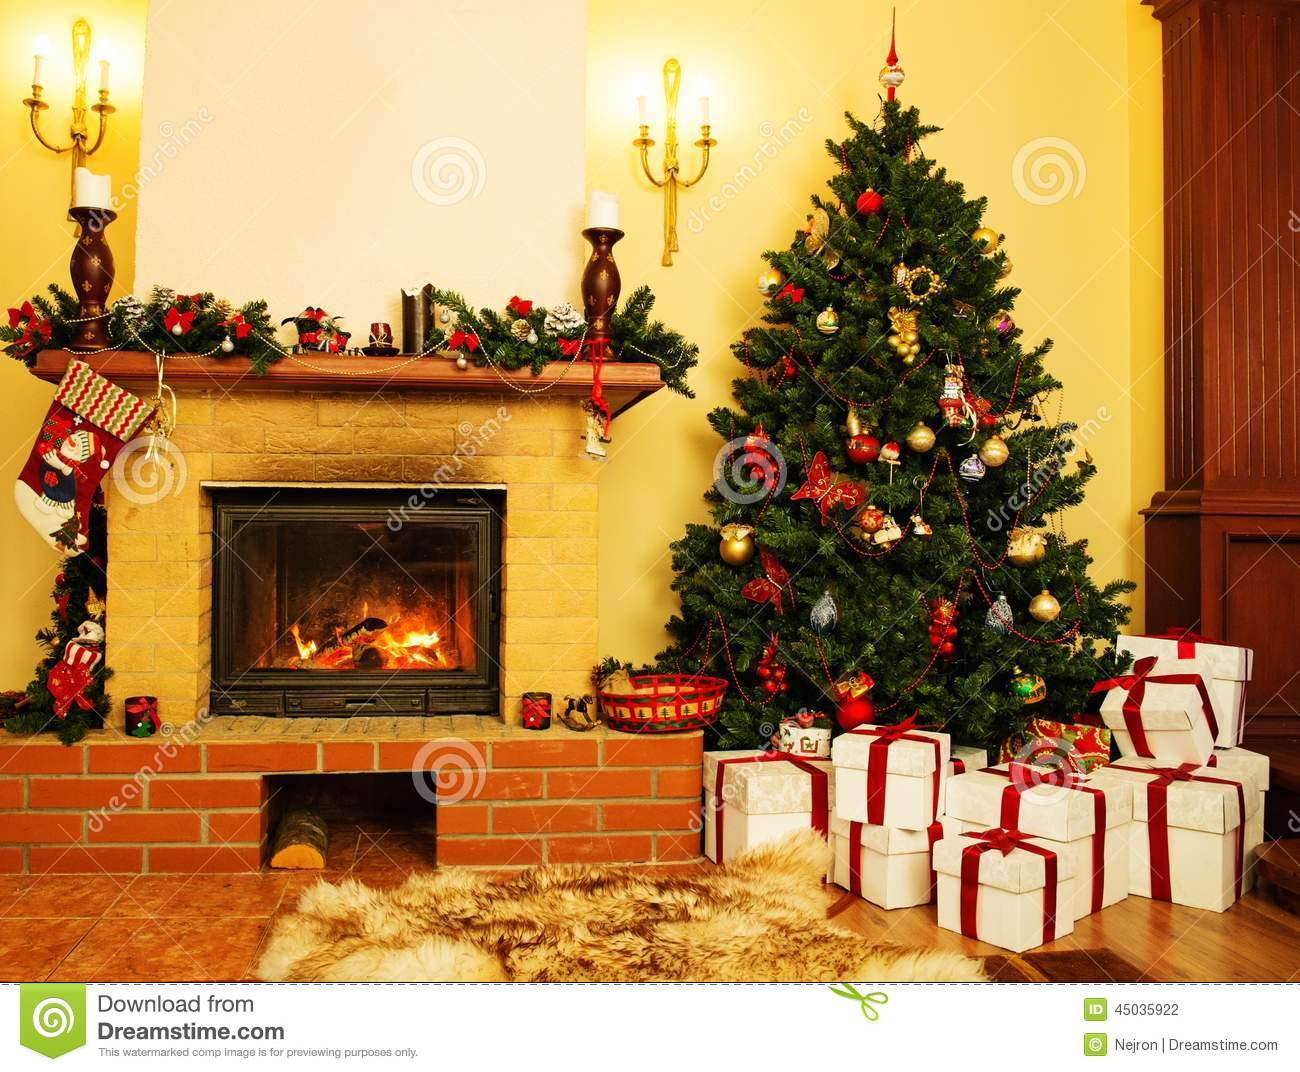 No l a d cor l 39 int rieur de maison photo stock image du for Decoration interieur noel